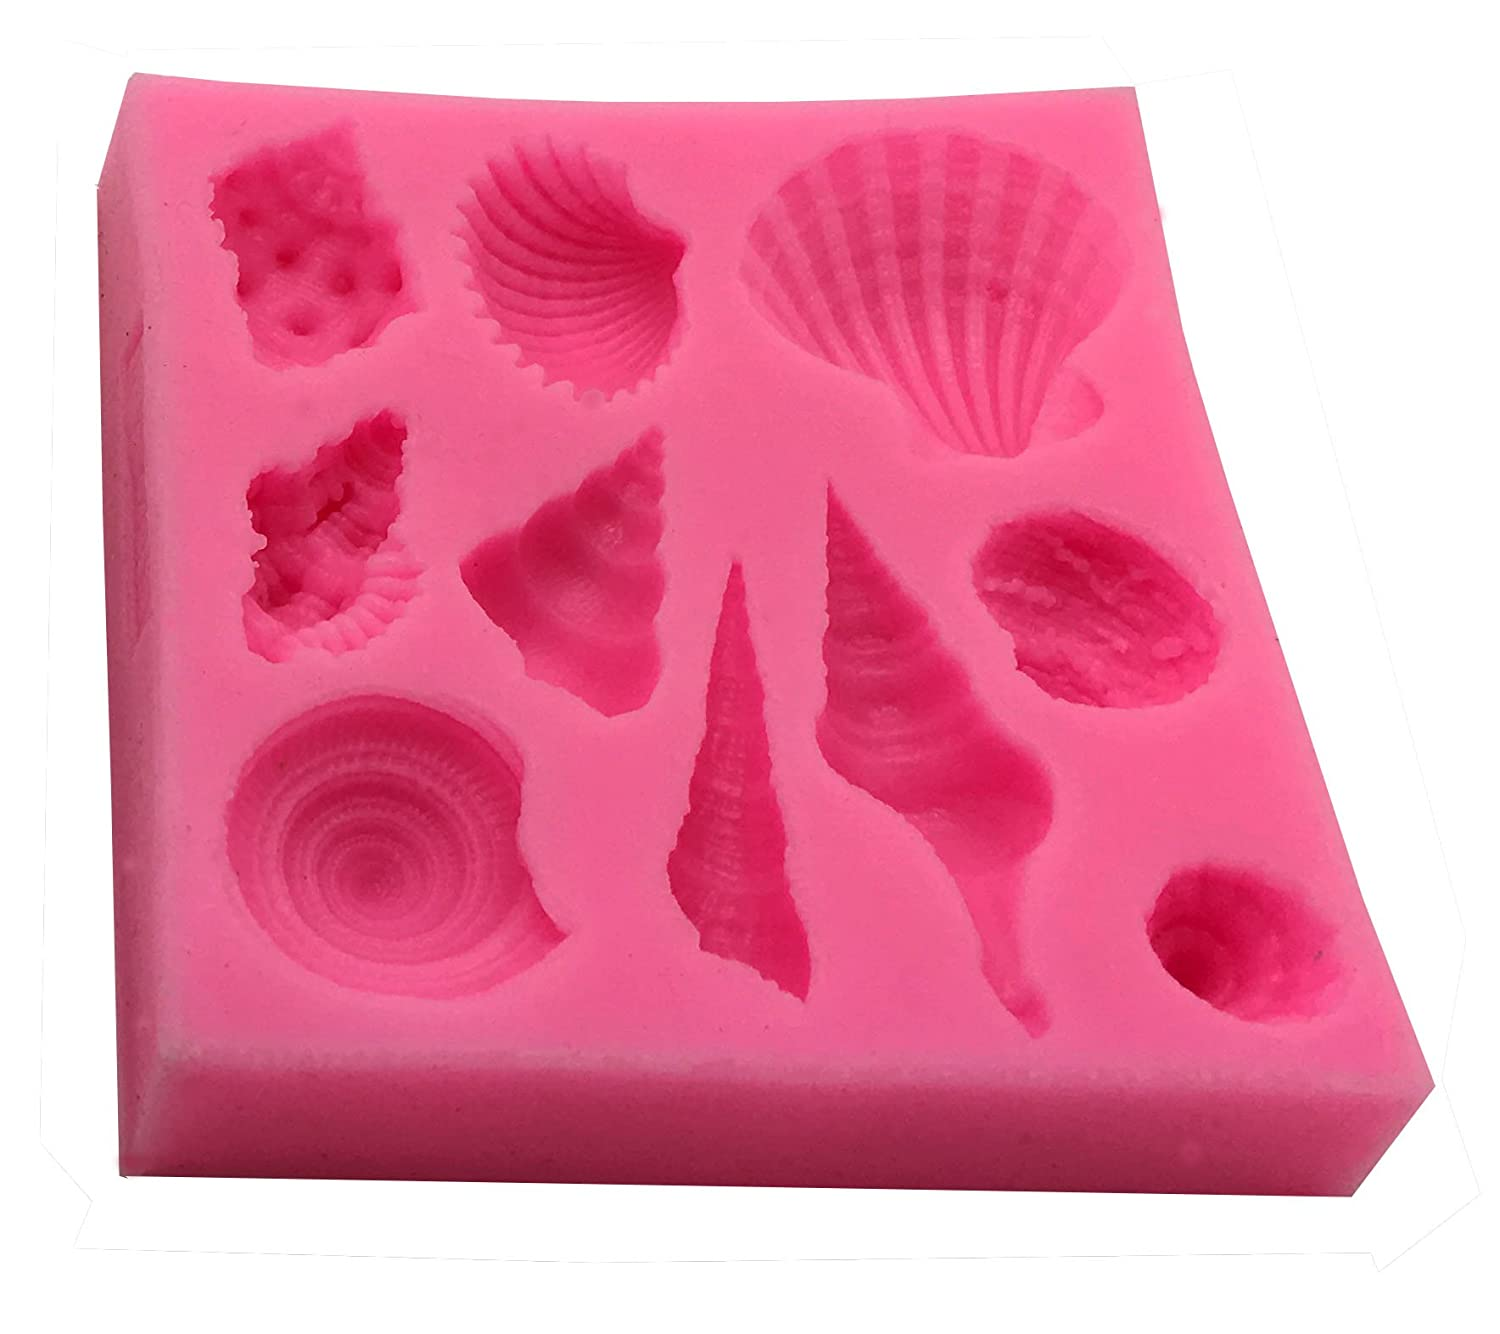 For Making Chocolate and Candy Sea Shells Okallo Products Silicone Seashell Mold MEGA 3 Pack